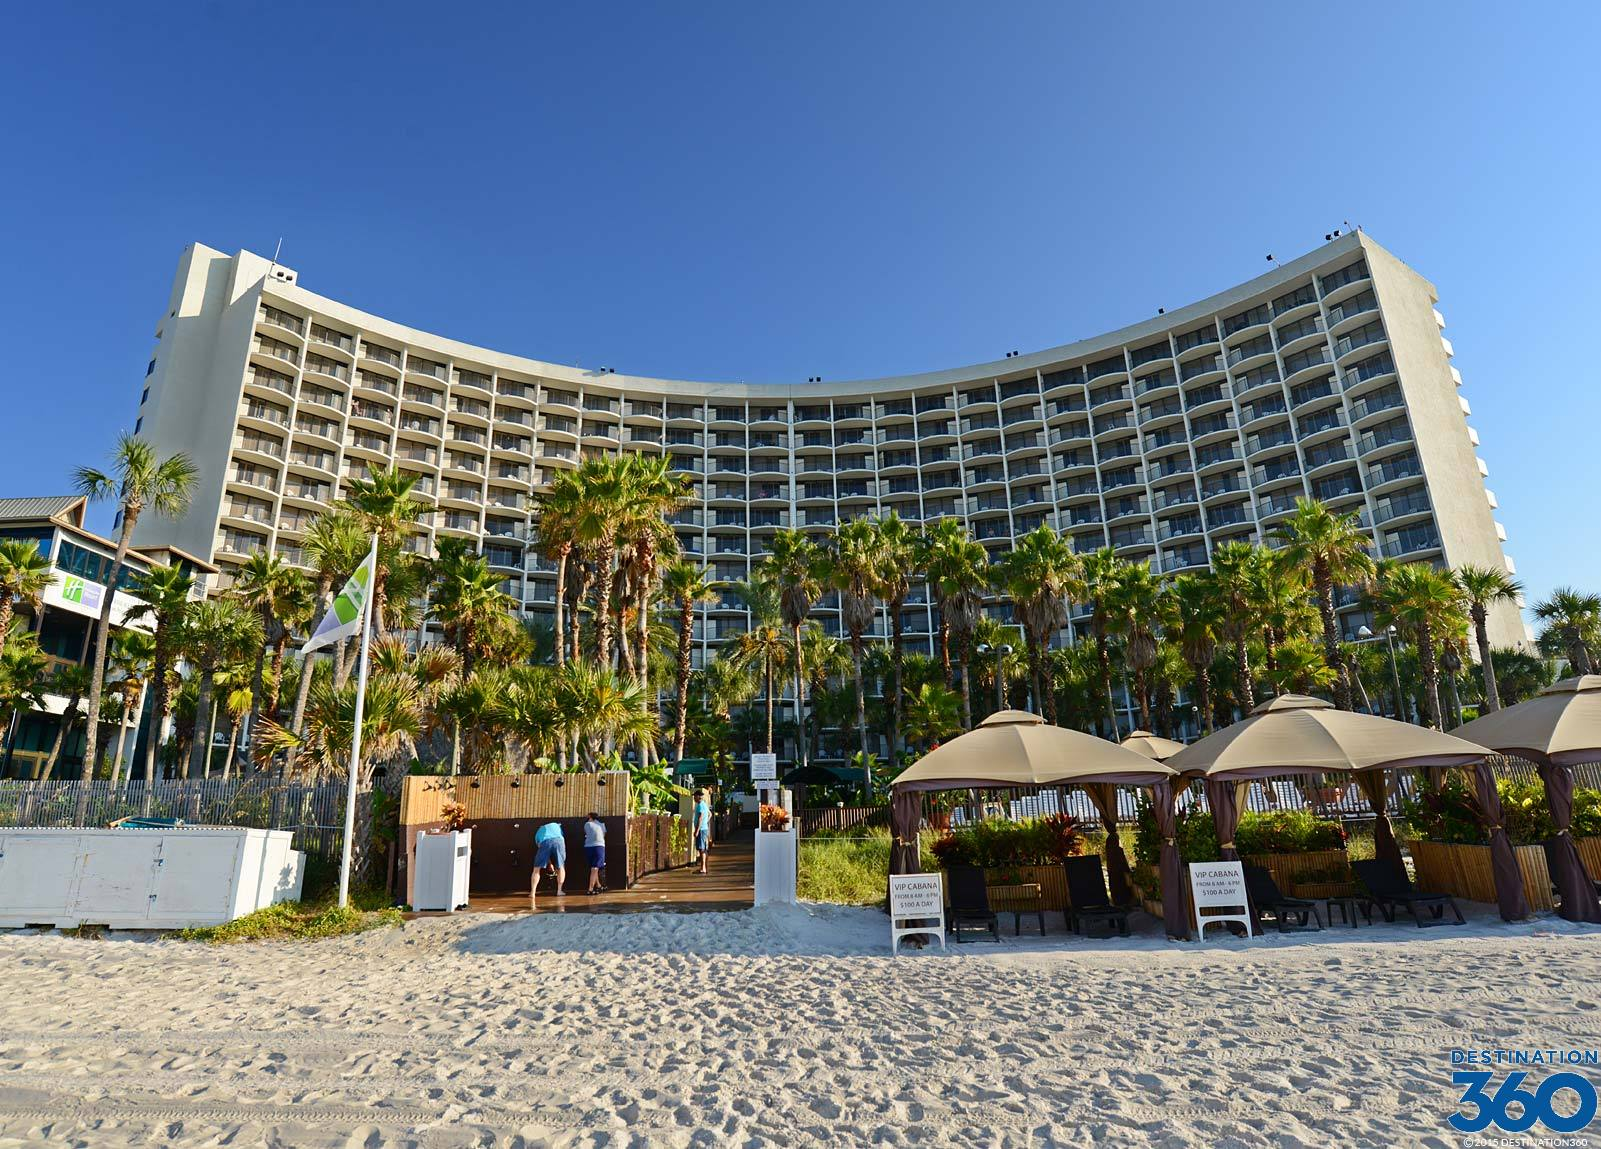 Hotels In Panama City Beach >> Panama City Beach Hotels On The Beach